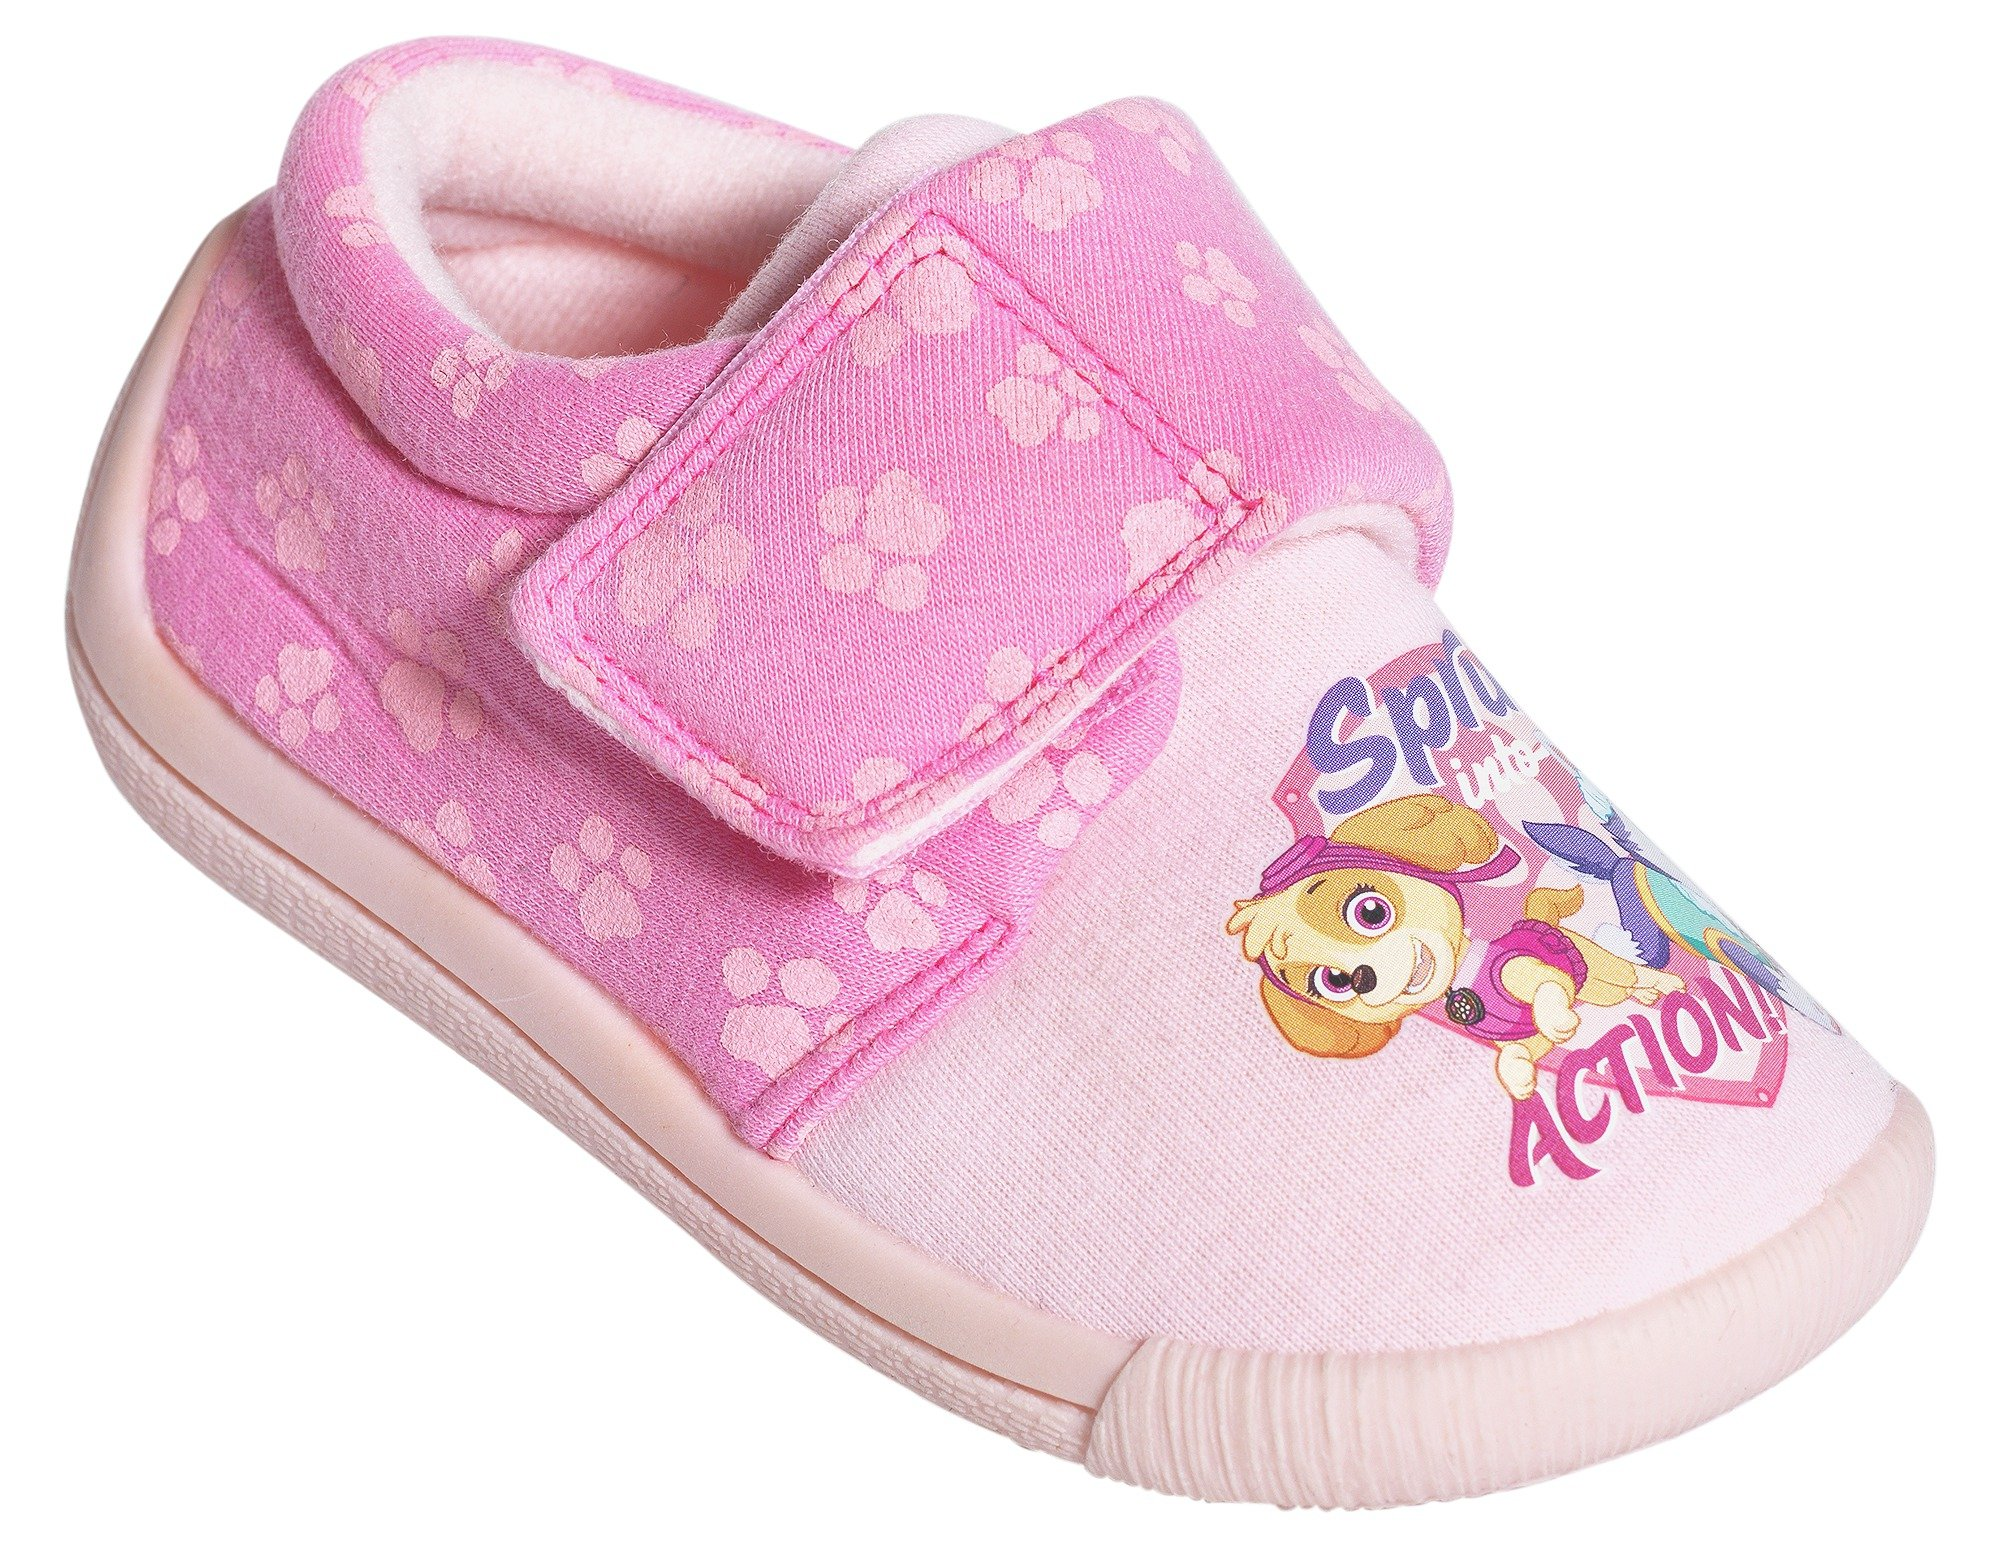 PAW Patrol Pink Slippers - Size 6